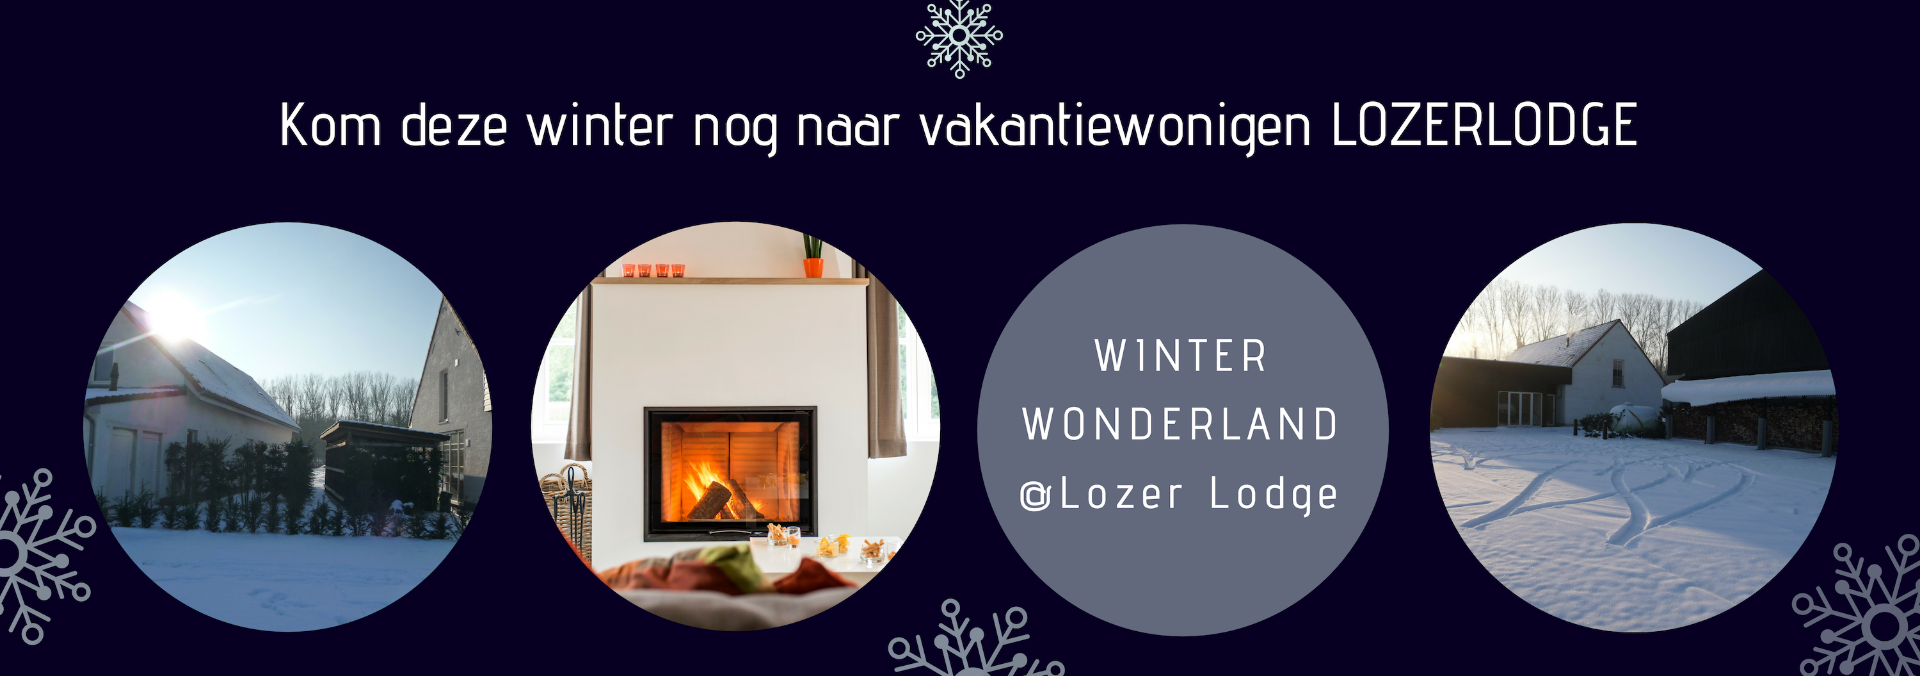 Vakantiewoning Lozer Lodge - Winter - grote familie